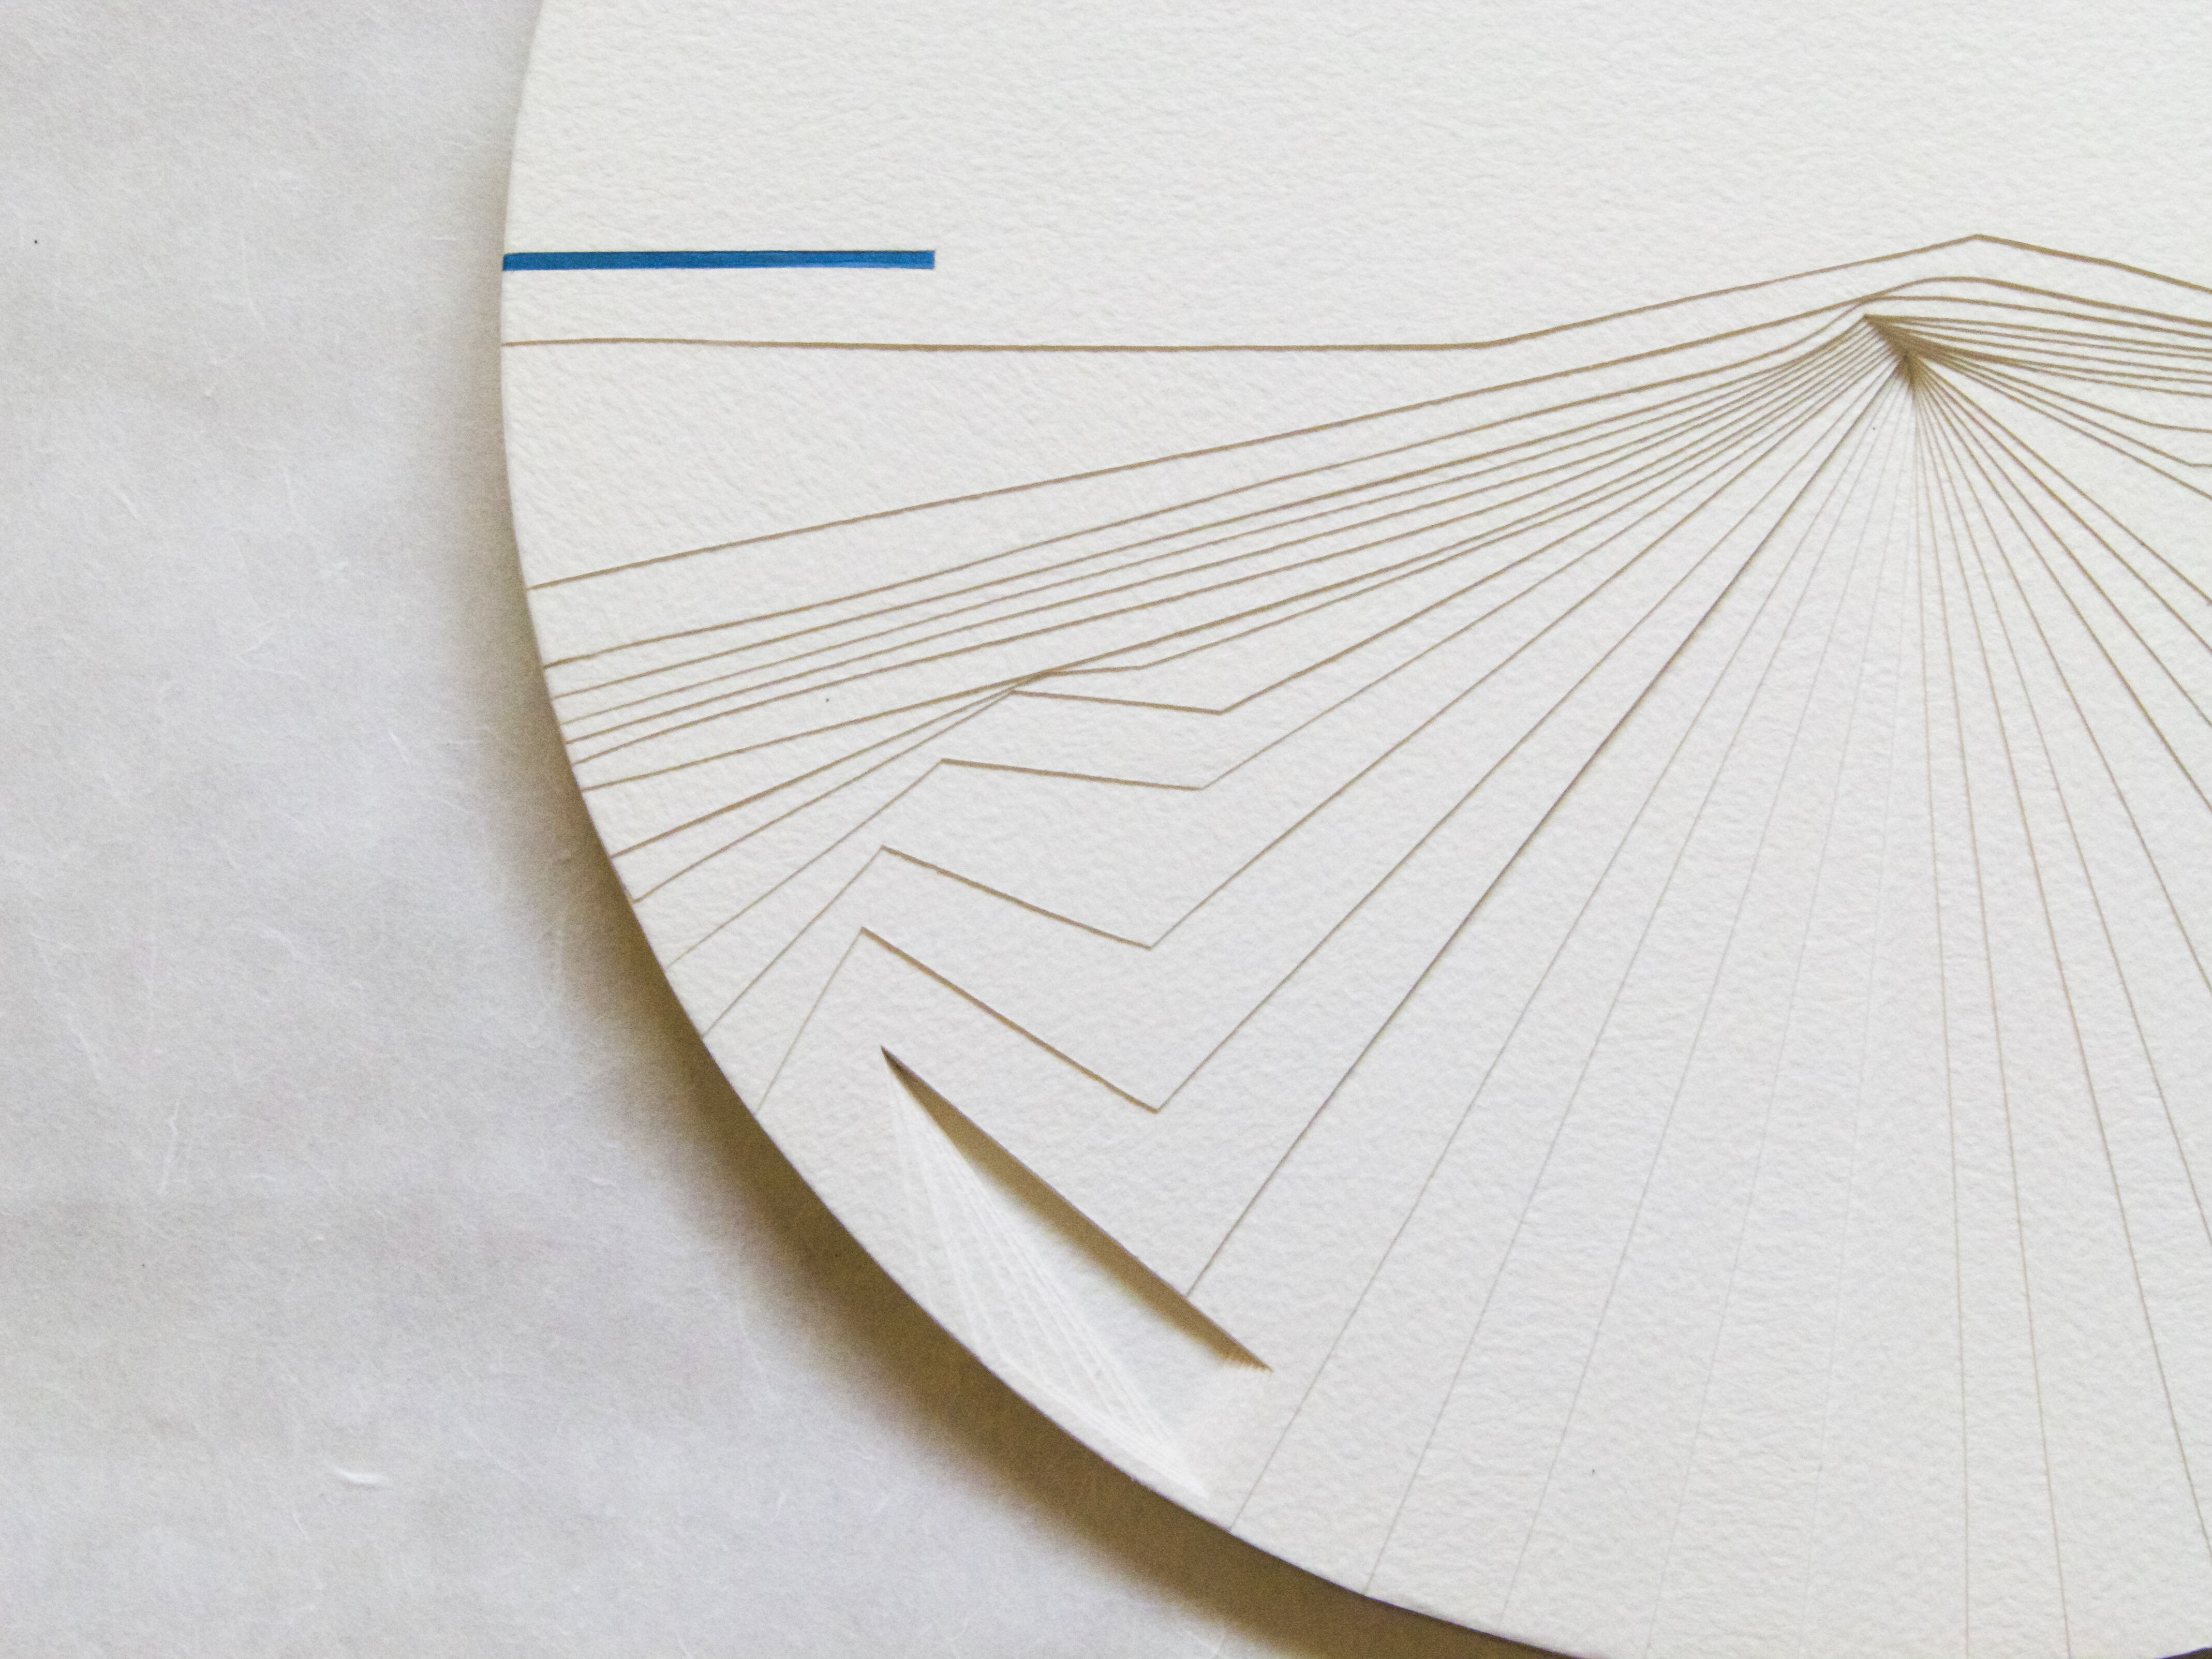 Cheng_Jacky_Water_1.3.2020_Bas Relief Paper sculpture_f